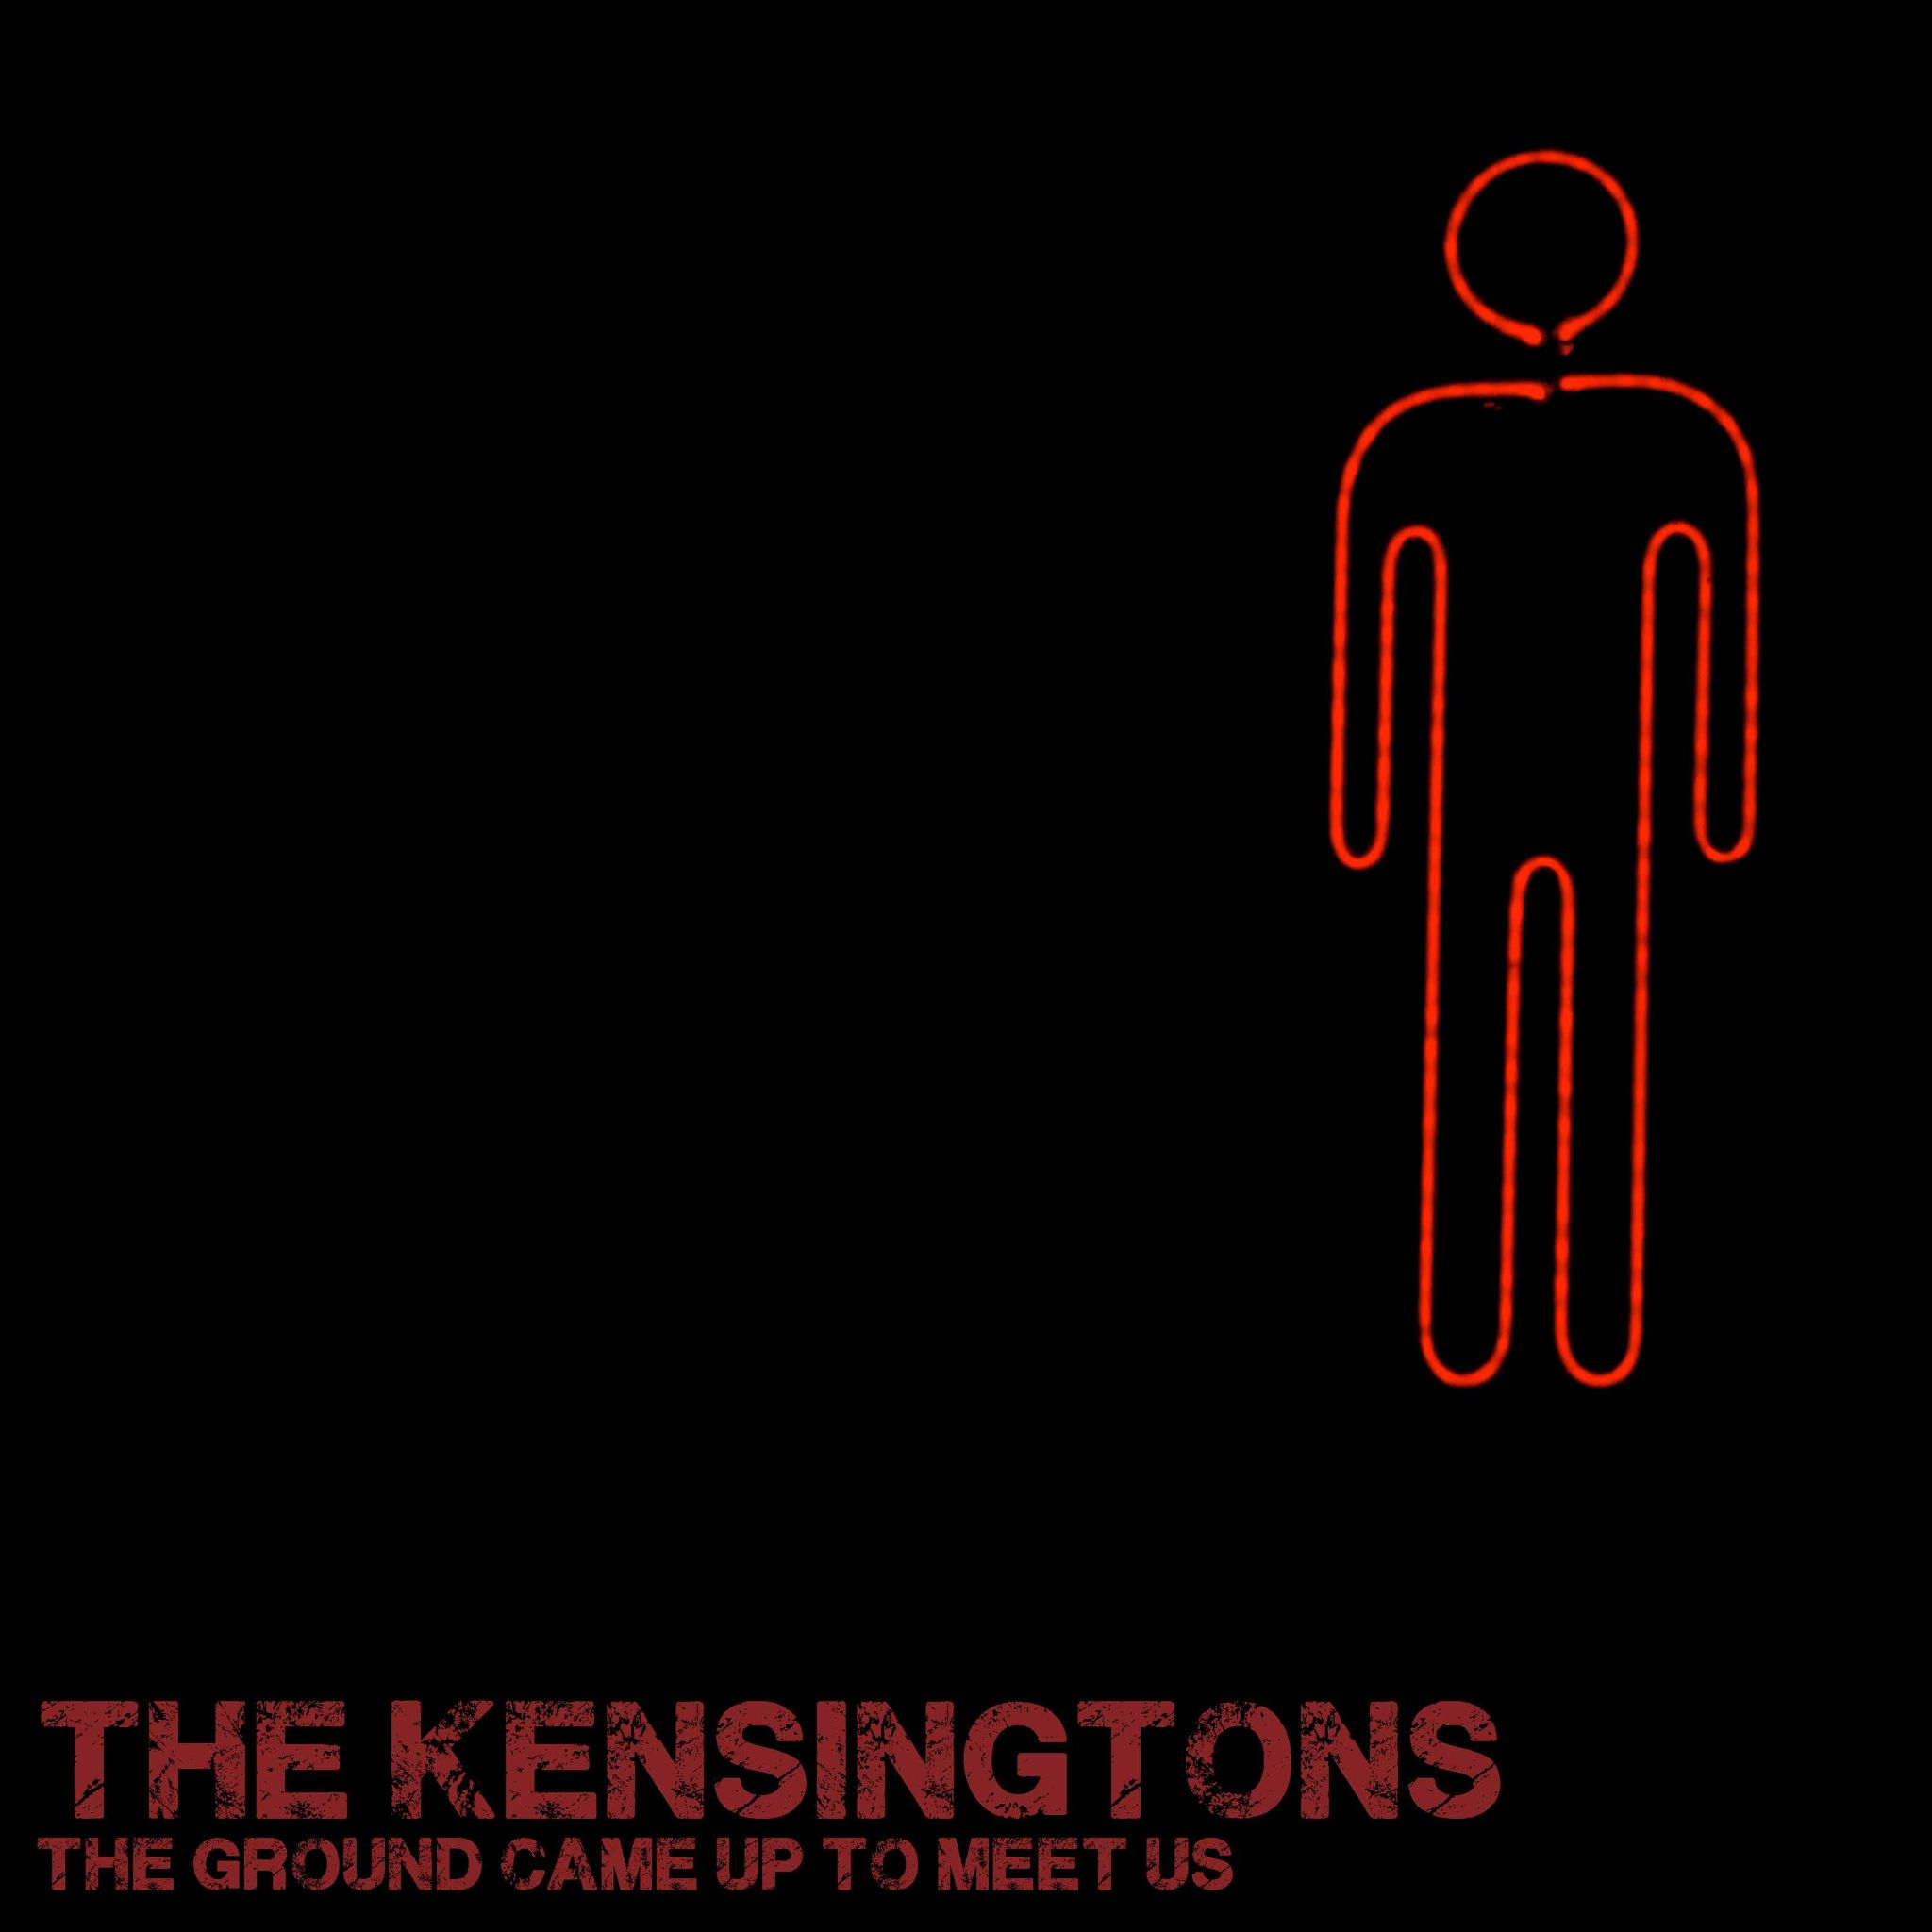 The Kensingtons' The Ground Came Up To Meet Us by Colin Bushell